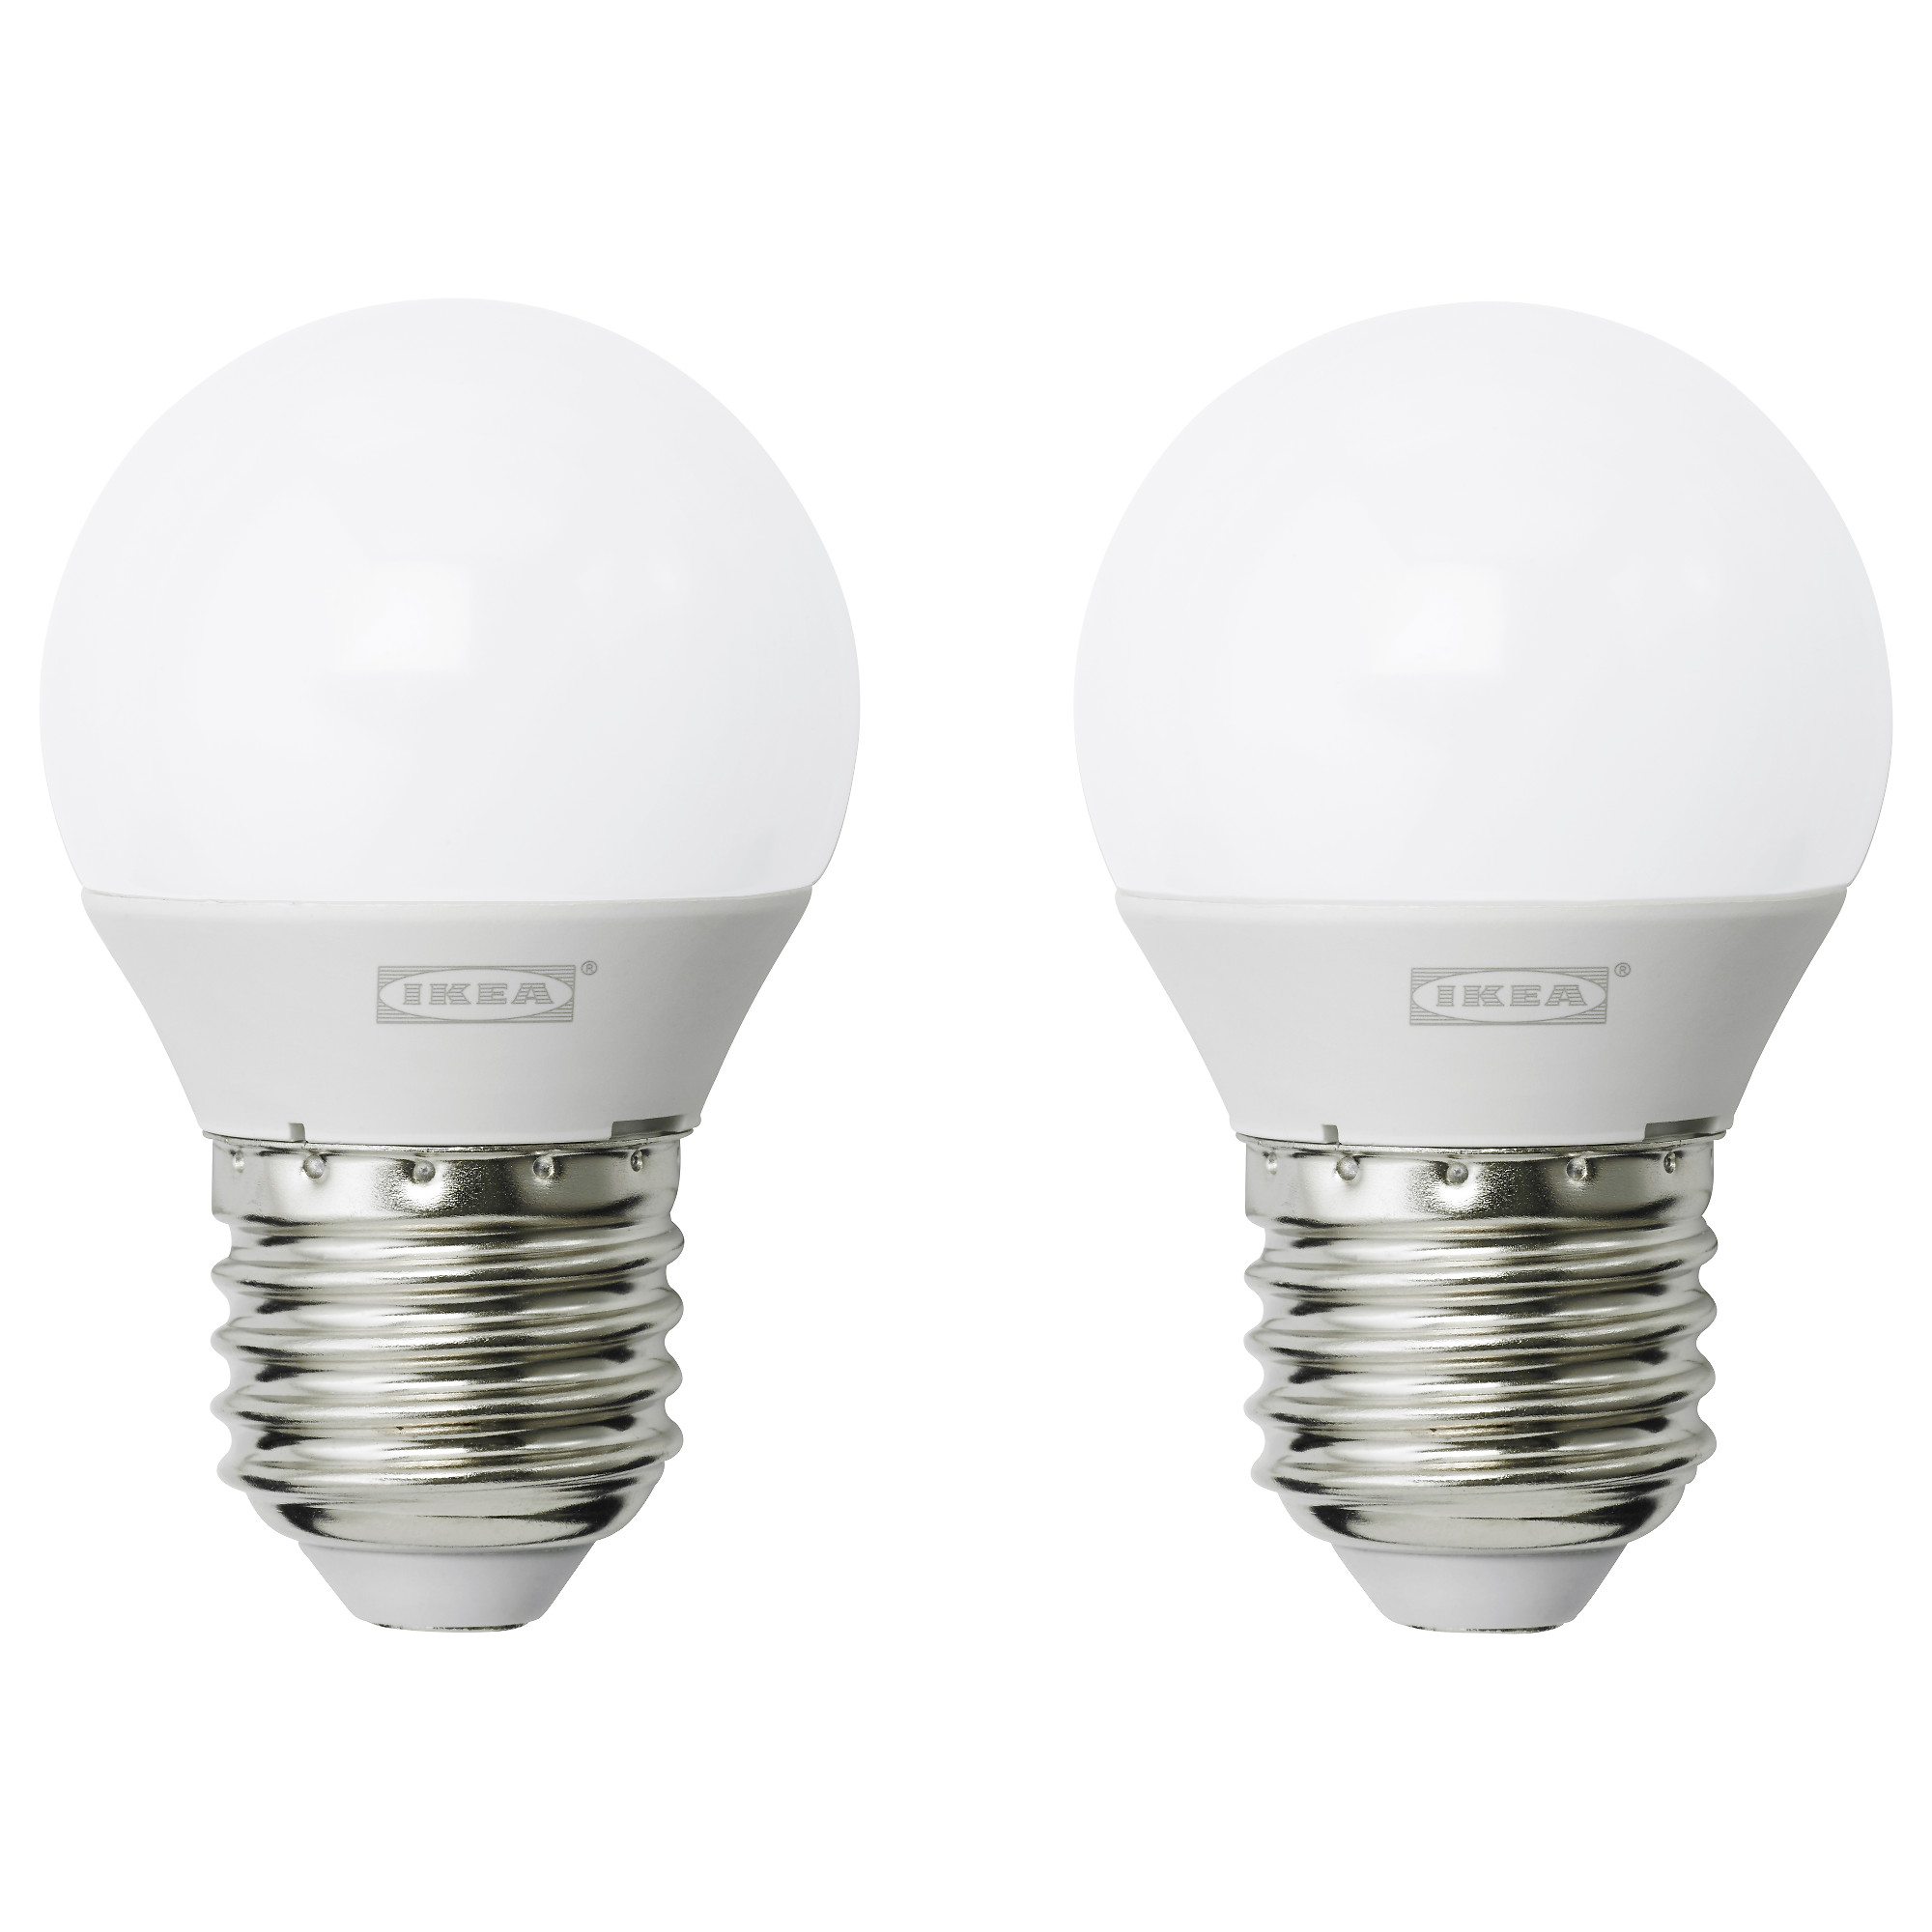 Led verlichting ikea ryet led lamp e27 200 lumen globe opaalwit vermogen 28 w aantal per parisarafo Image collections